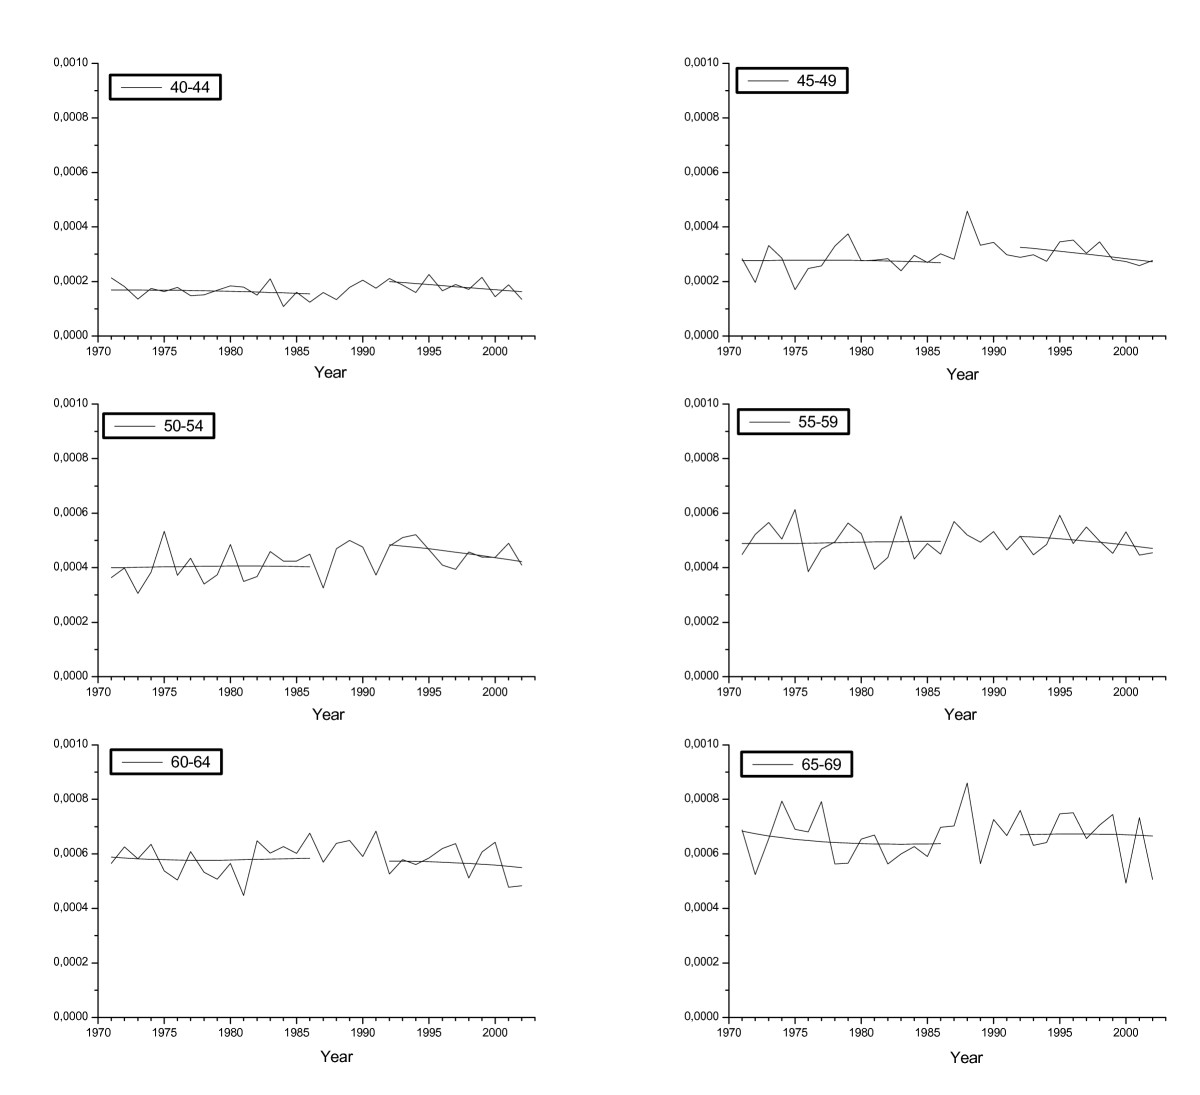 http://static-content.springer.com/image/art%3A10.1186%2F1471-2458-8-38/MediaObjects/12889_2007_Article_1008_Fig3_HTML.jpg